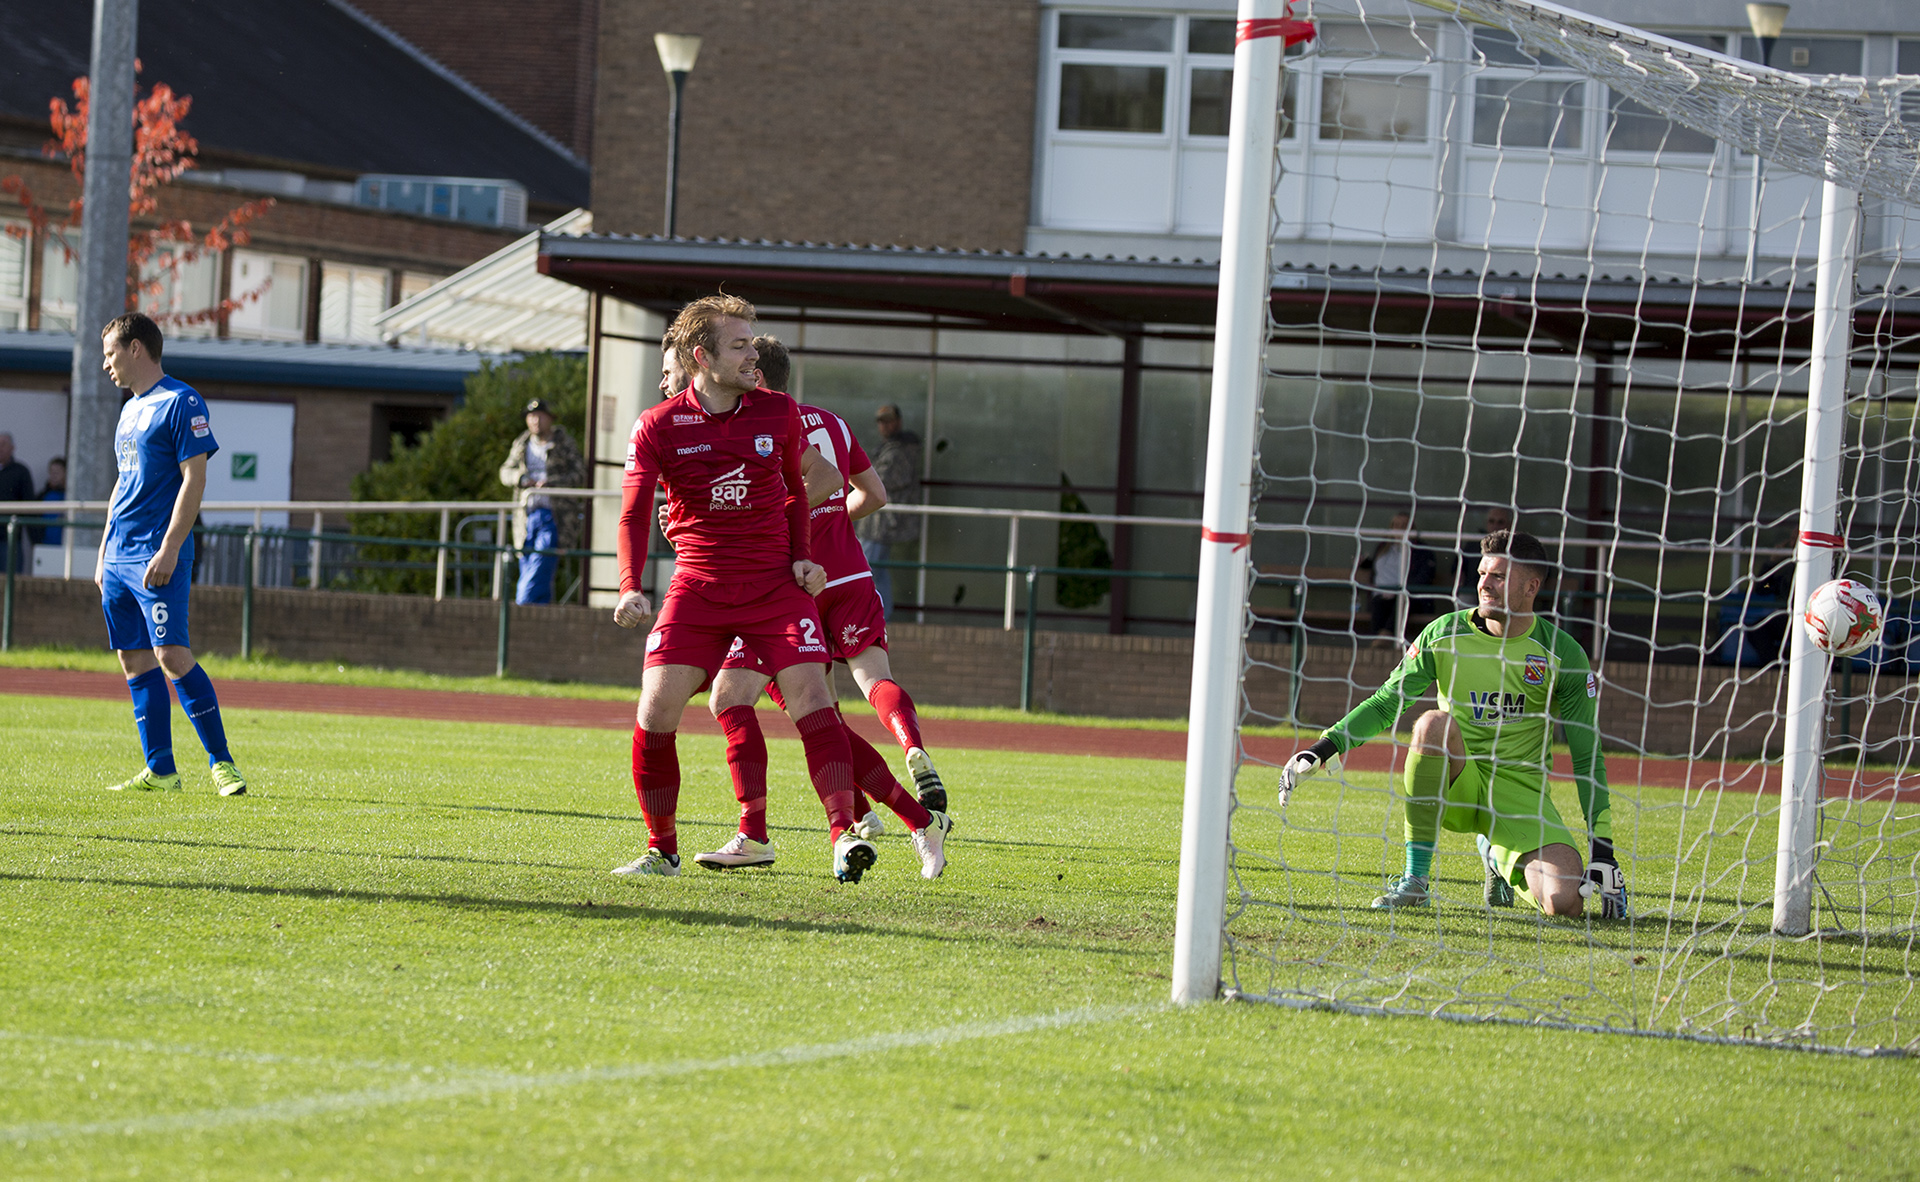 John Disney celebrates as River Humphreys' flick goes beyond Connor Roberts in the Bangor goal - © NCM Media